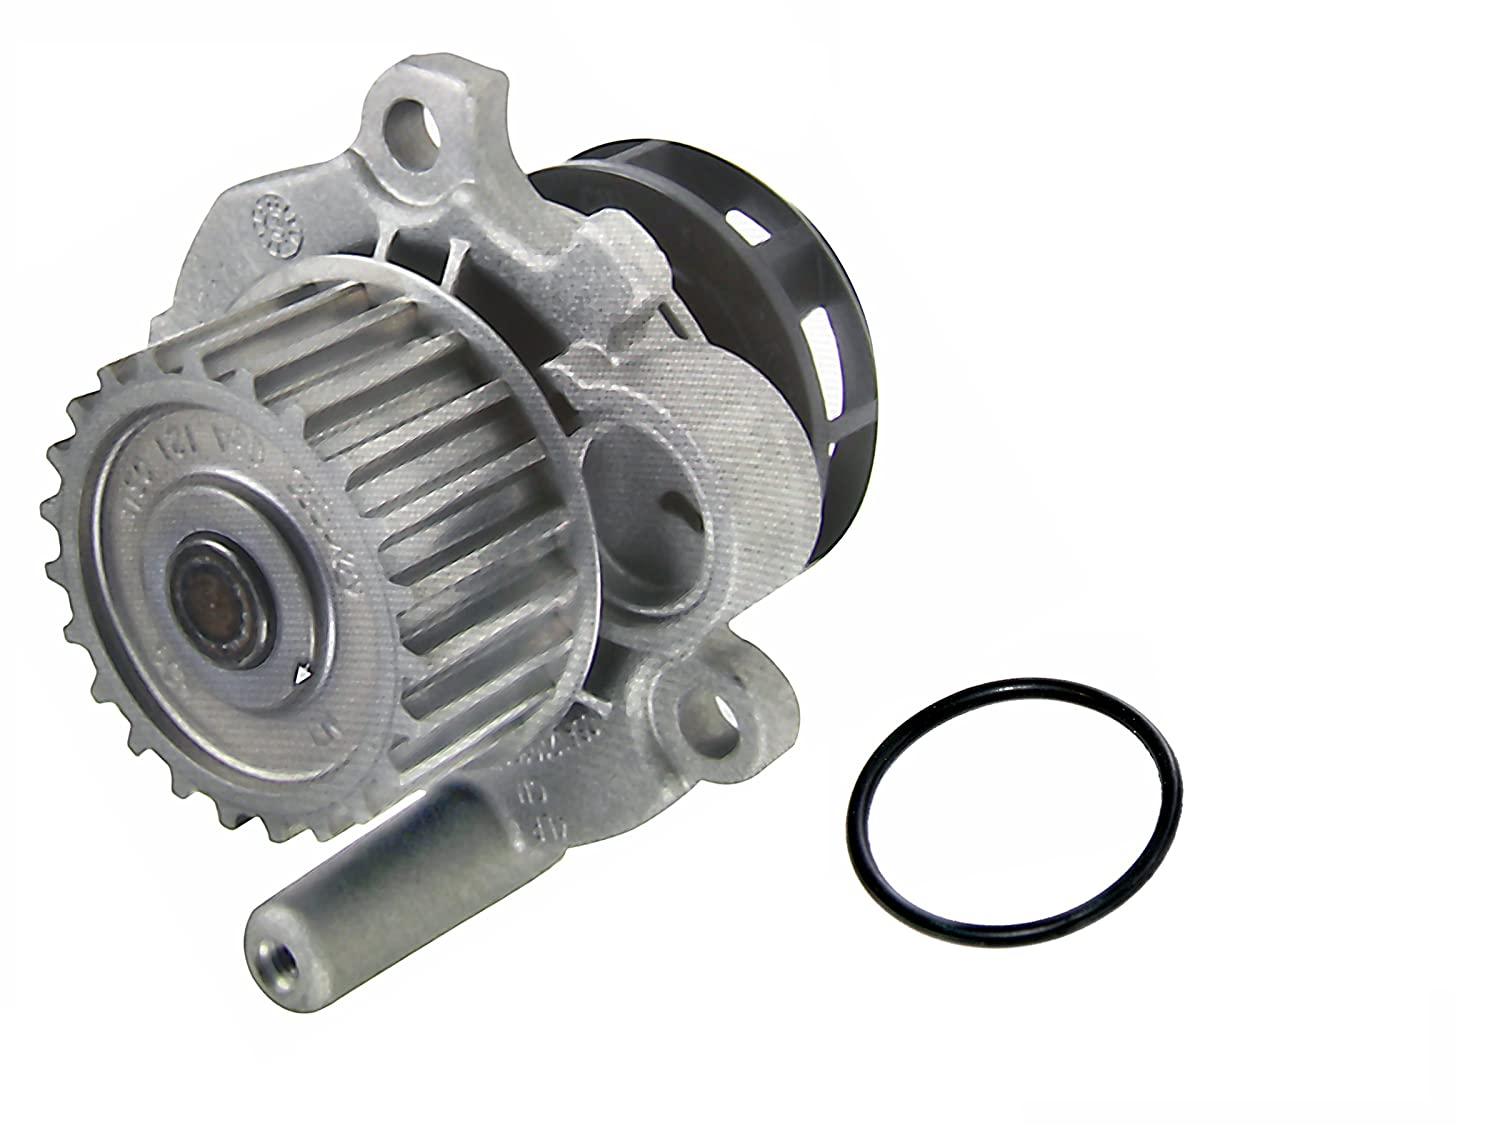 w//Plastic impeller 06A-121-012G MTC 4635 for Audi//Volkswagen Models 06A-121-012G Water Pump MTC 4635